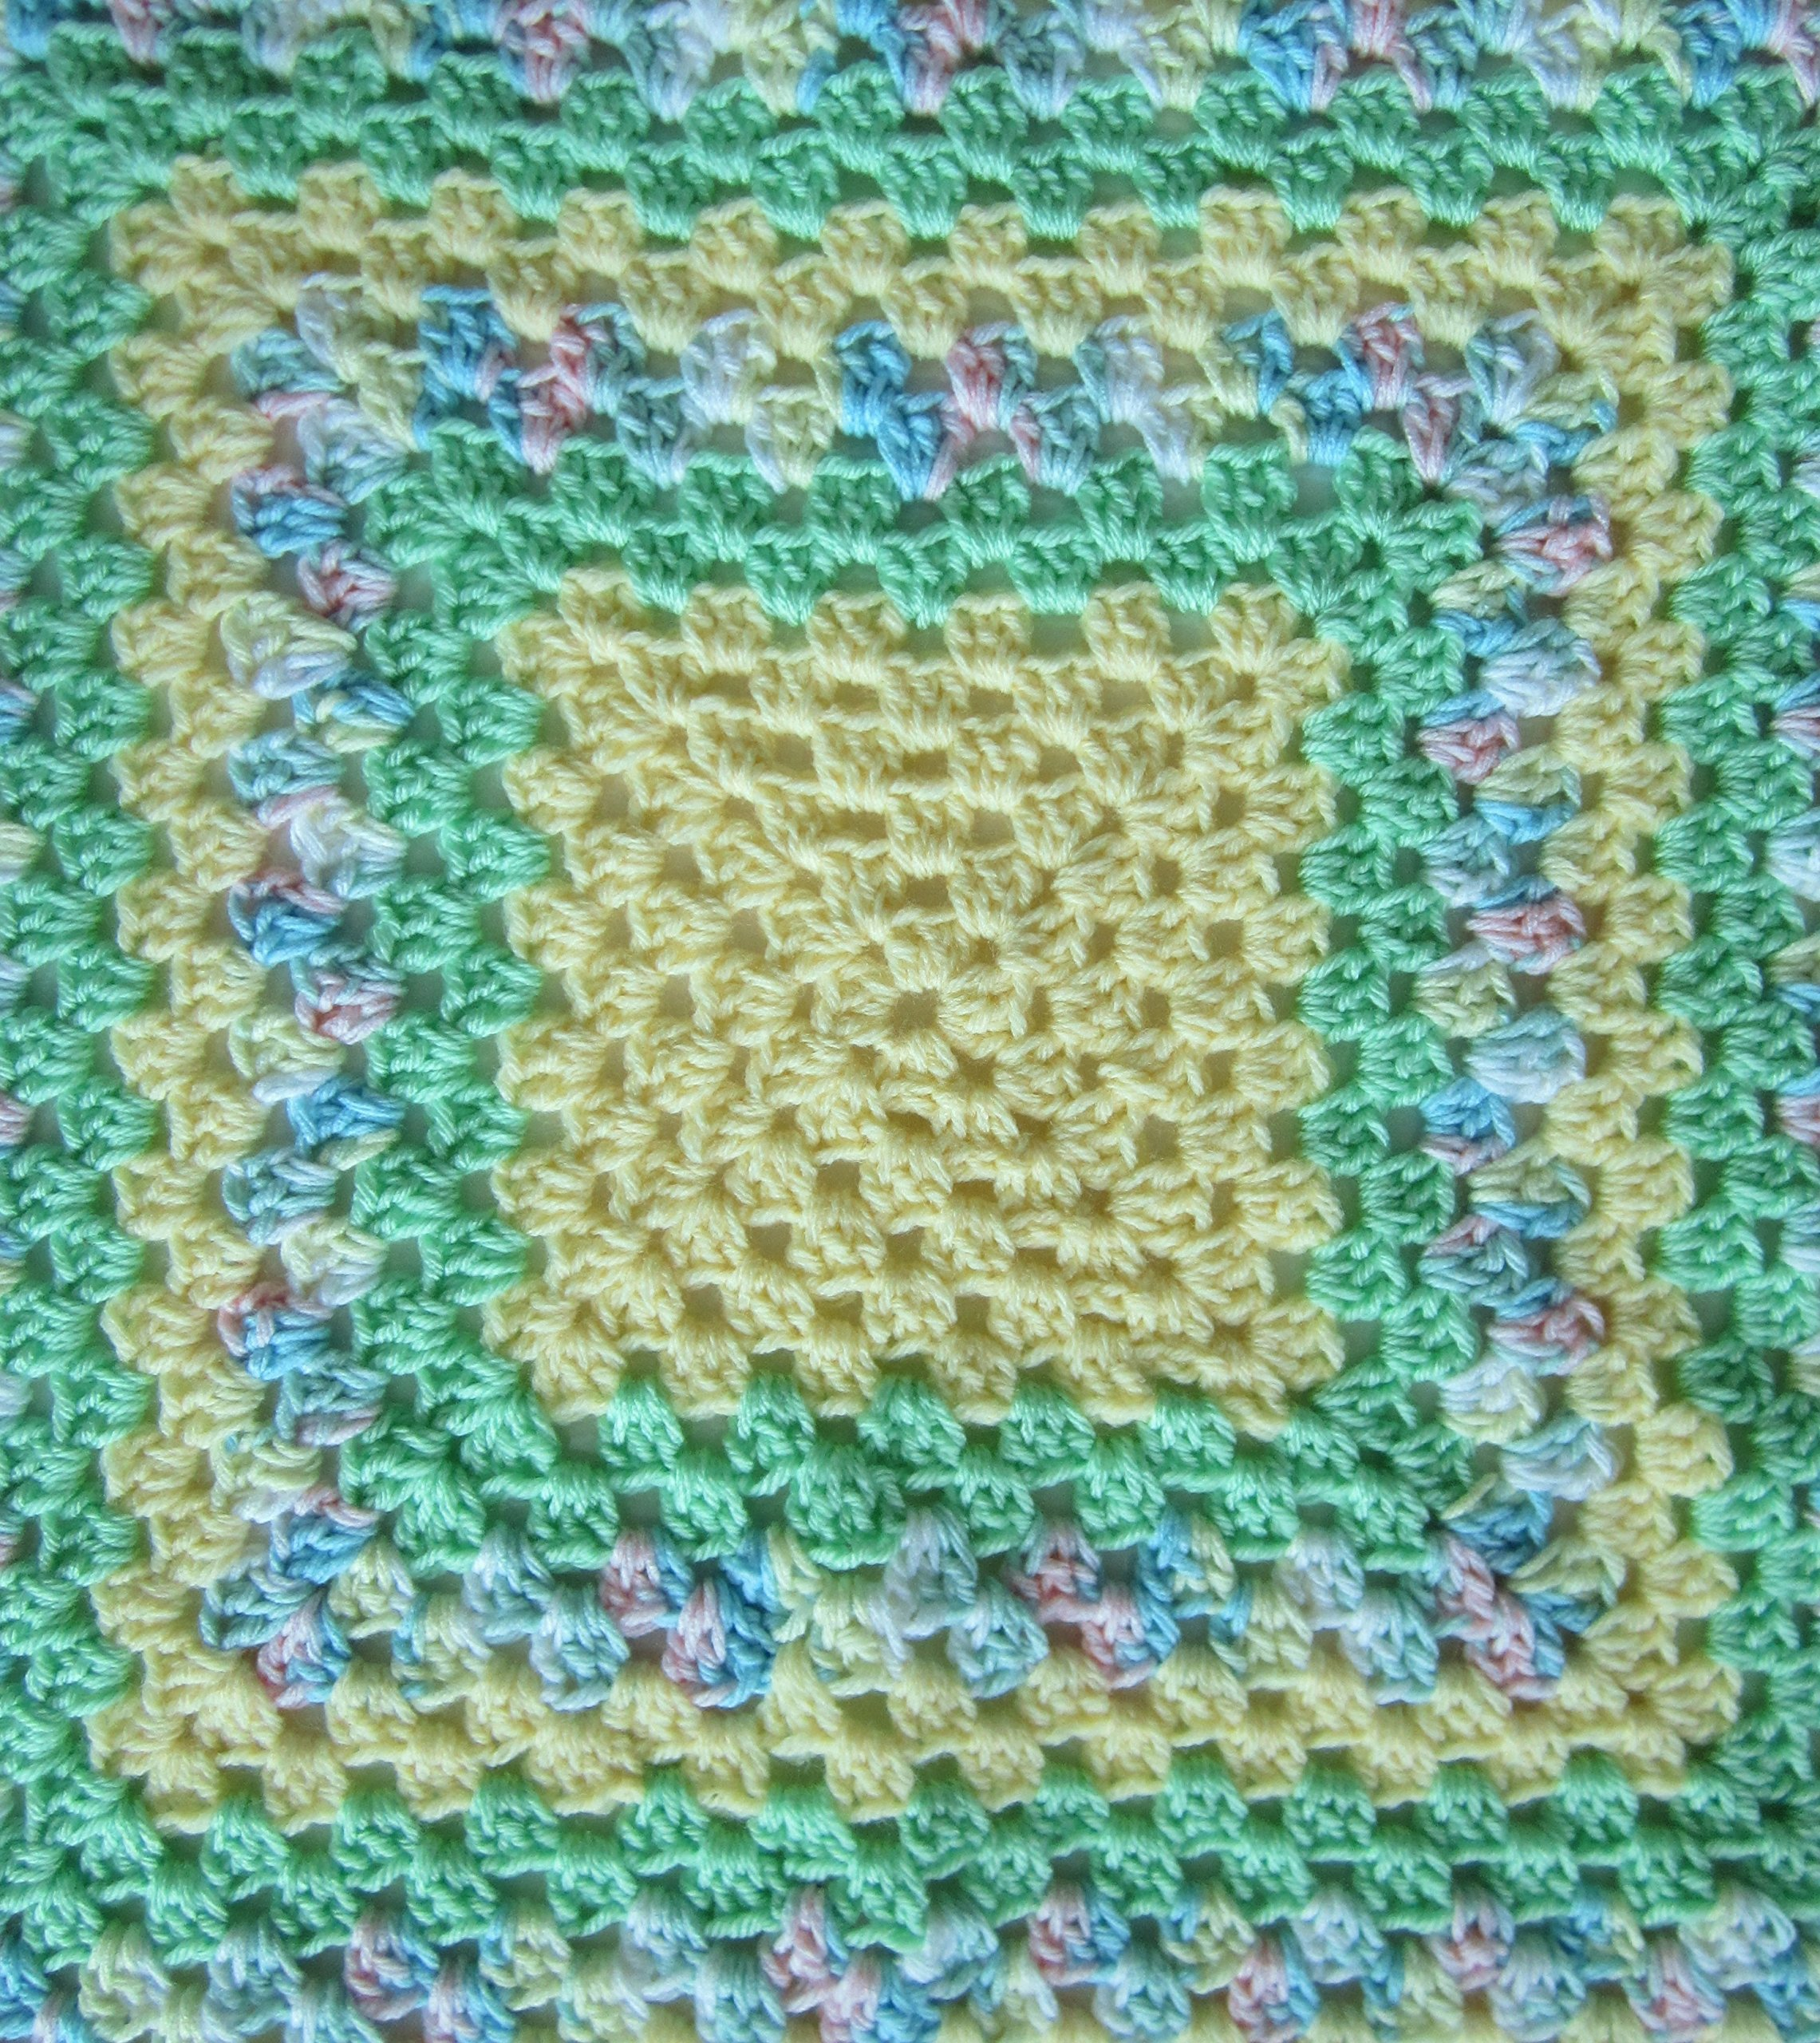 Crocheted Yellow and Green Granny Square Baby Blanket